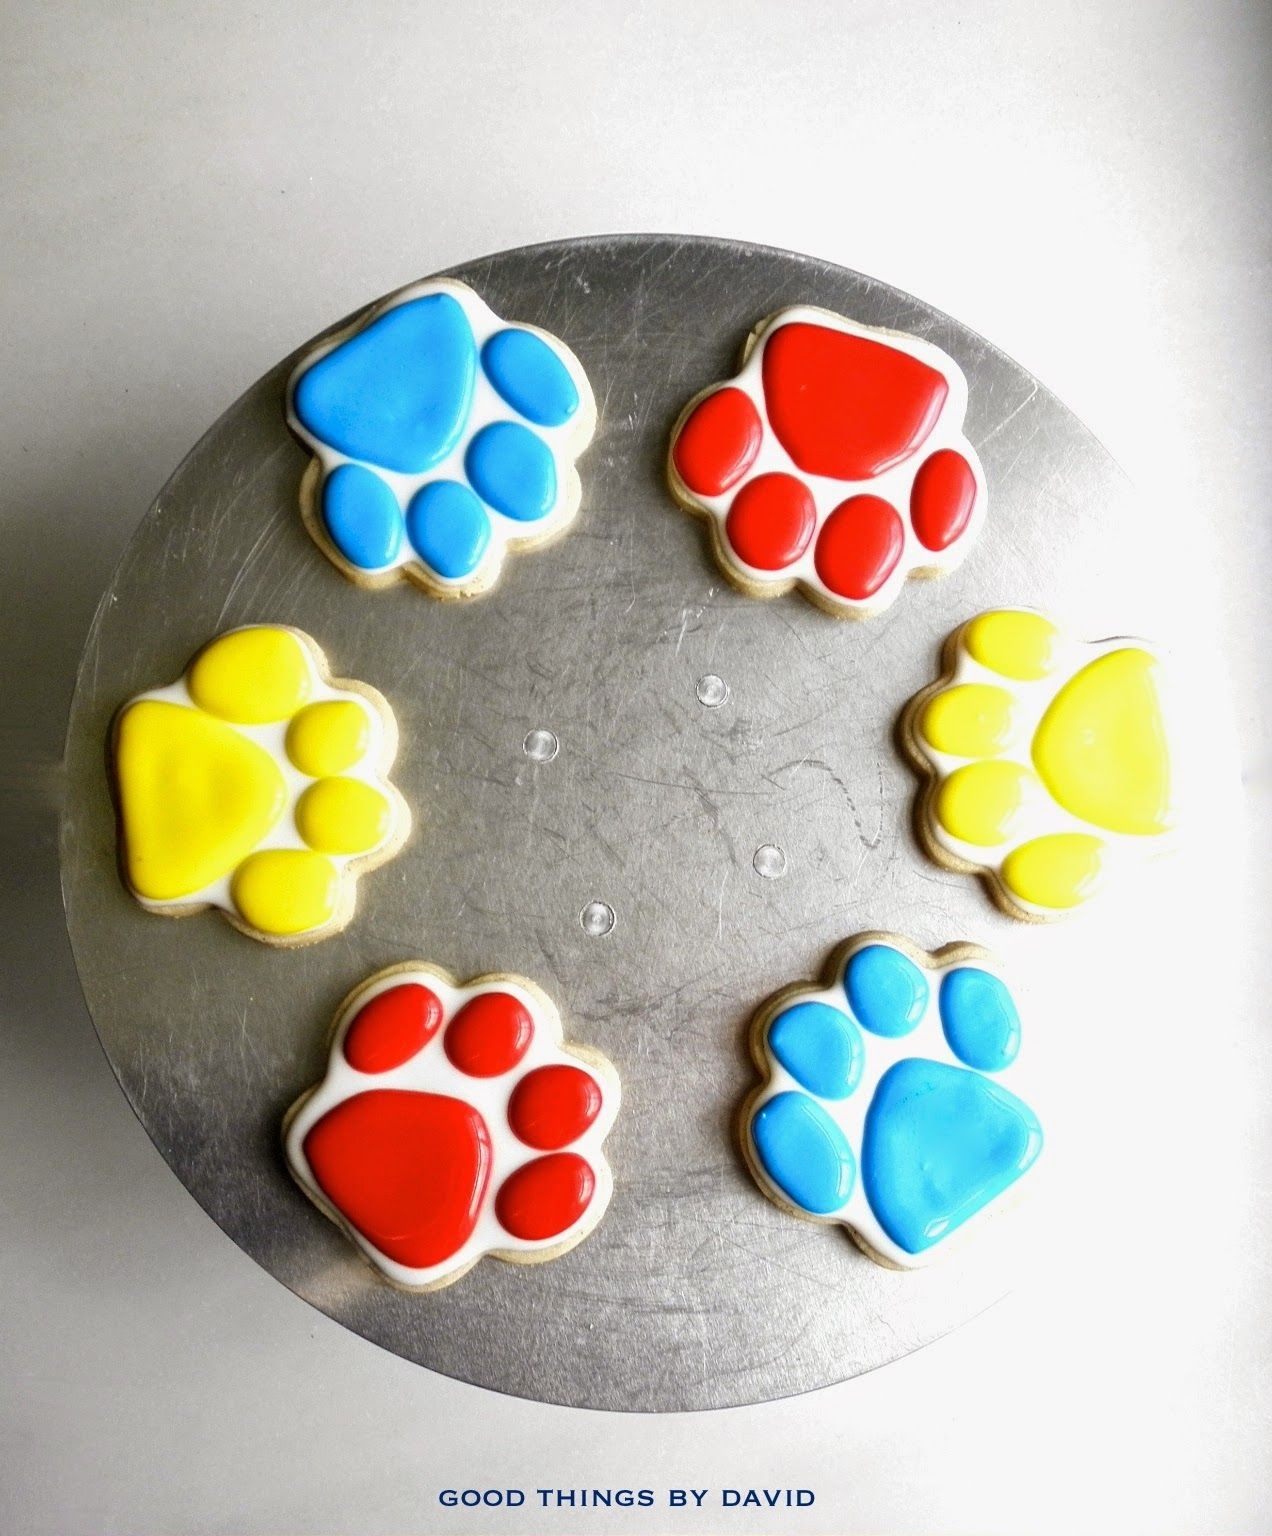 Dog Birthday Decorations Paw Patrol Theme Royal Icing Painted Shortbread Cookies In The